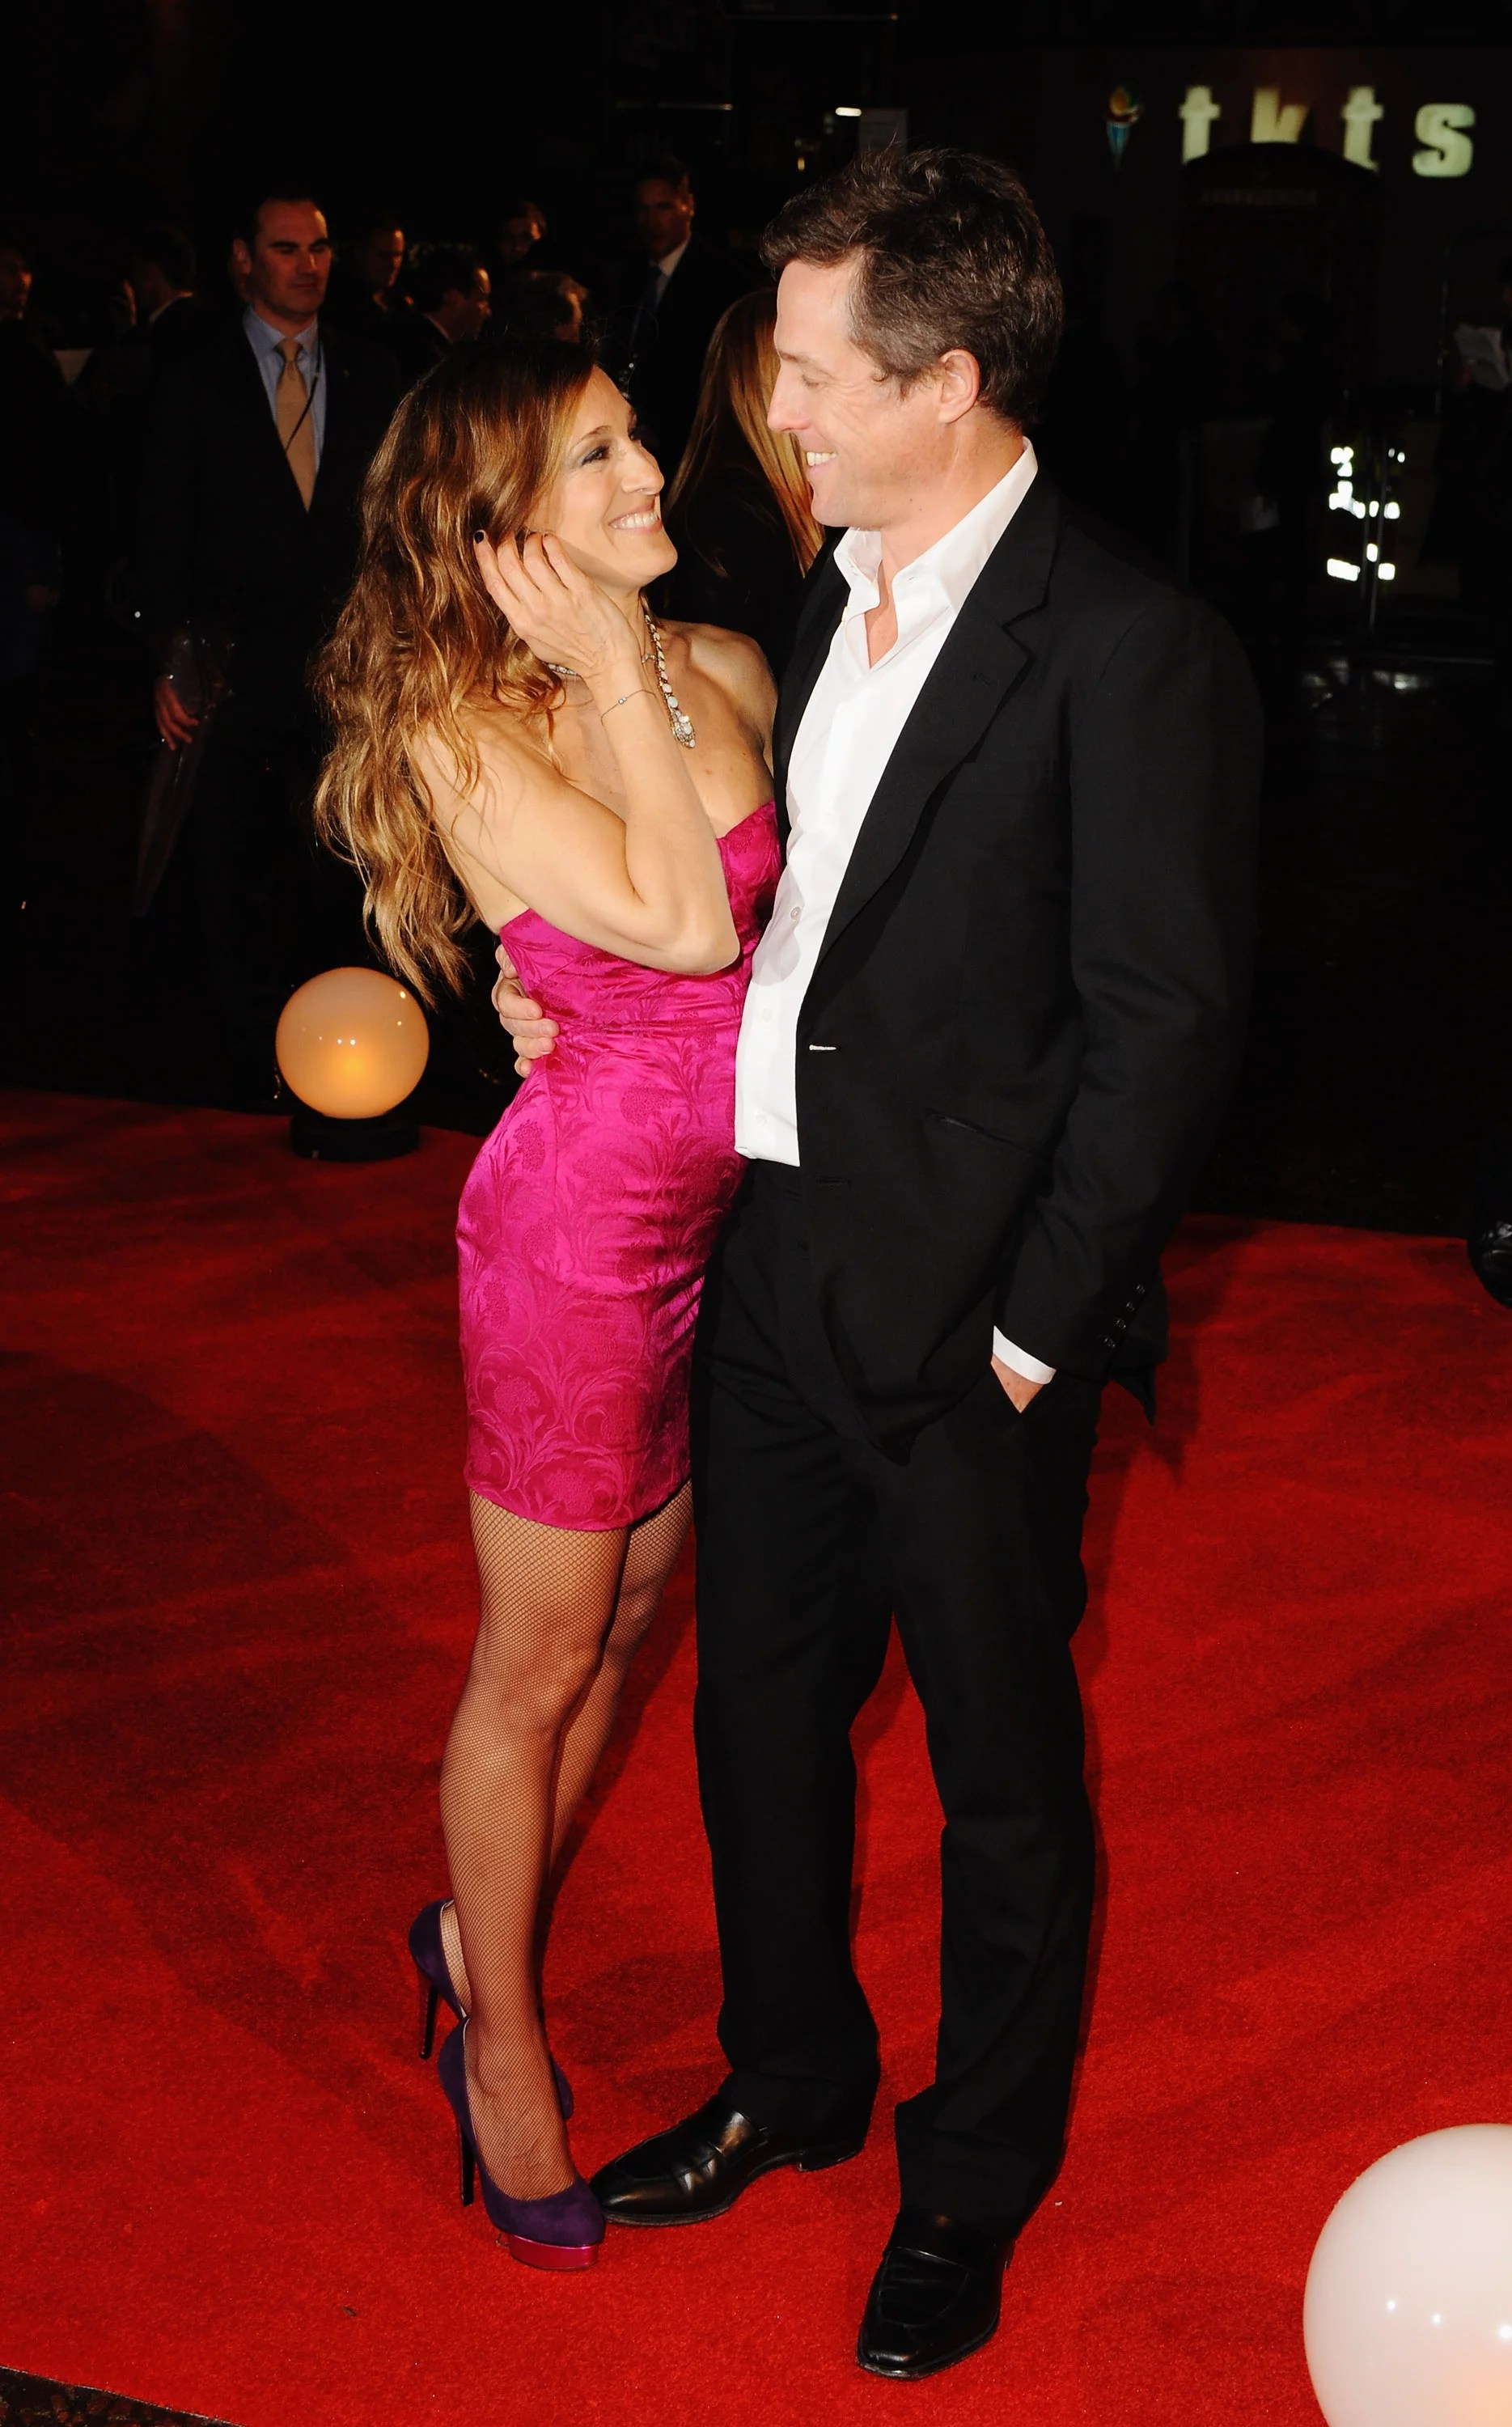 Photos of Sarah Jessica Parker and Hugh Grant at the